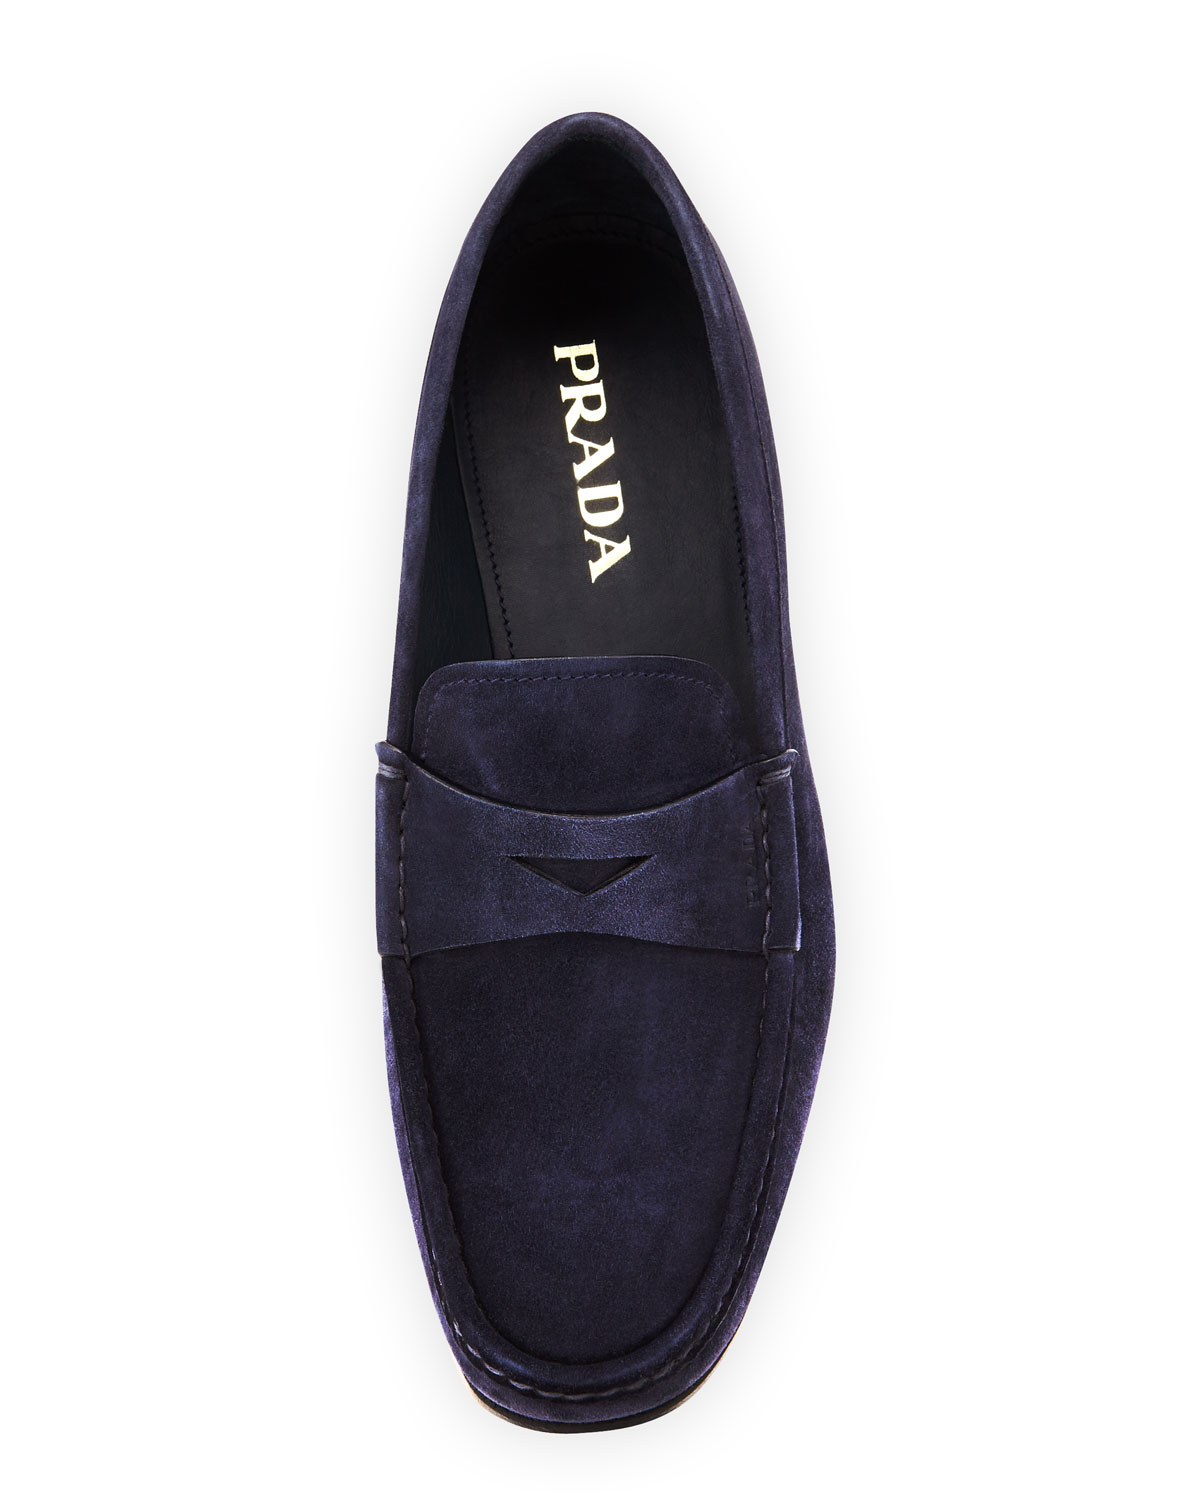 74bcc65e8f25 Prada Suede Penny Loafer in Blue for Men - Lyst